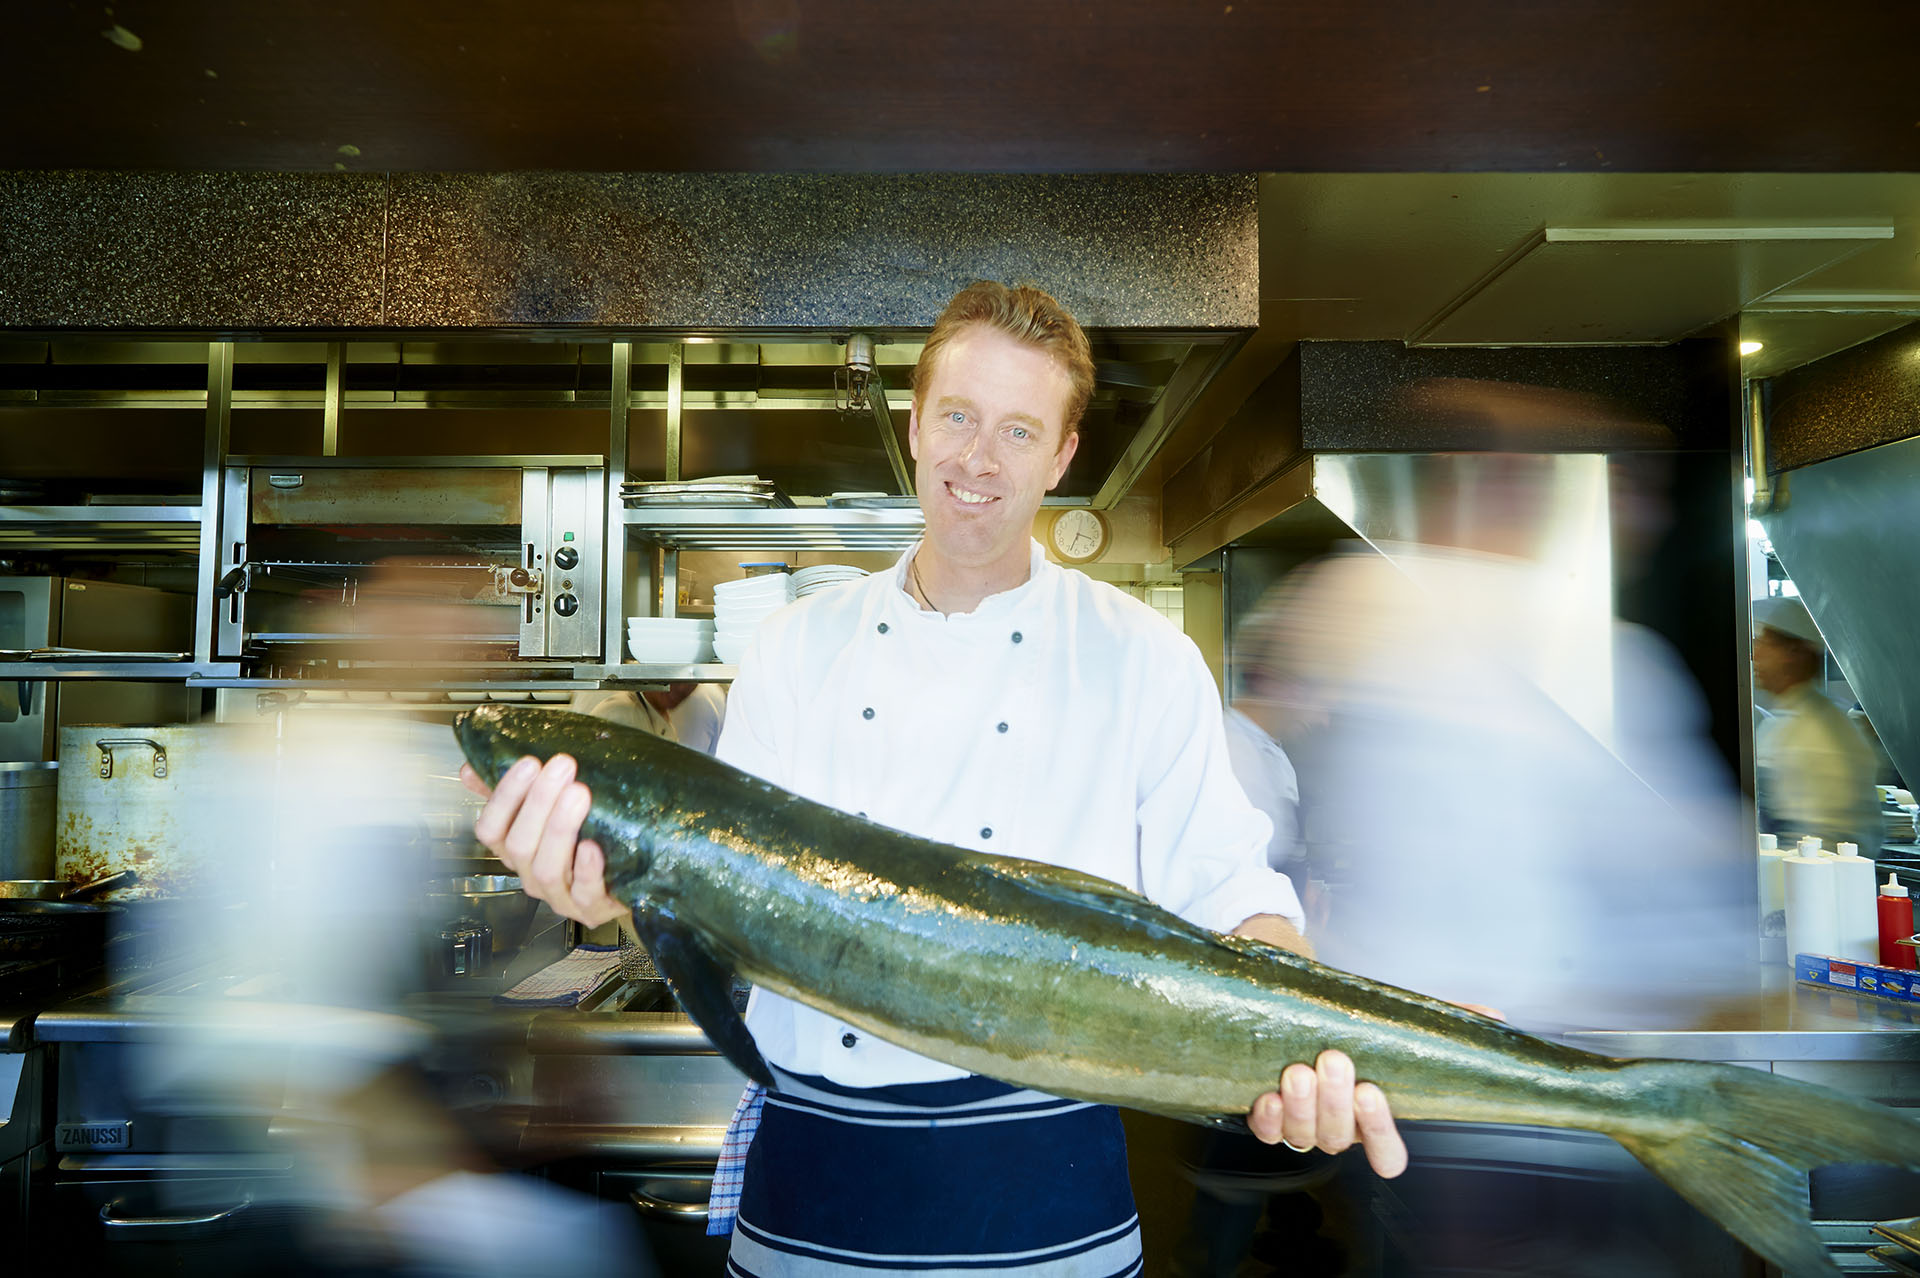 Photographs of Chef Matt Bates preparing Cobia for Pacific Reef Fisheries at Cafe Sydney, Circular Quay, Sydney